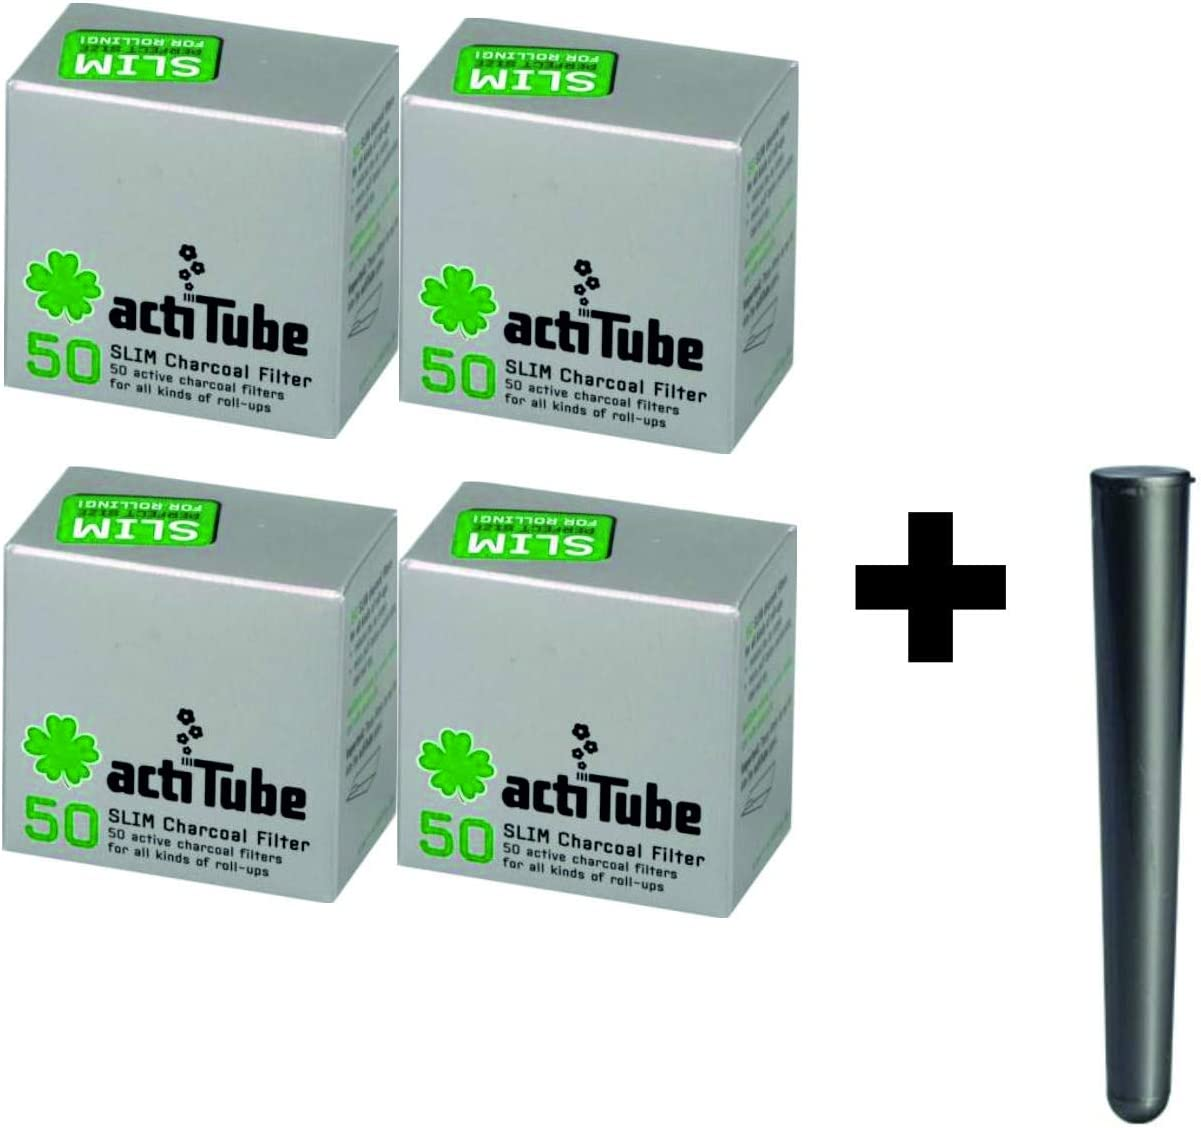 actiTube Kogu Set Slim 500 Filtro de carb/ón Activo 7,1 mm, Incluye Funda J 10x50